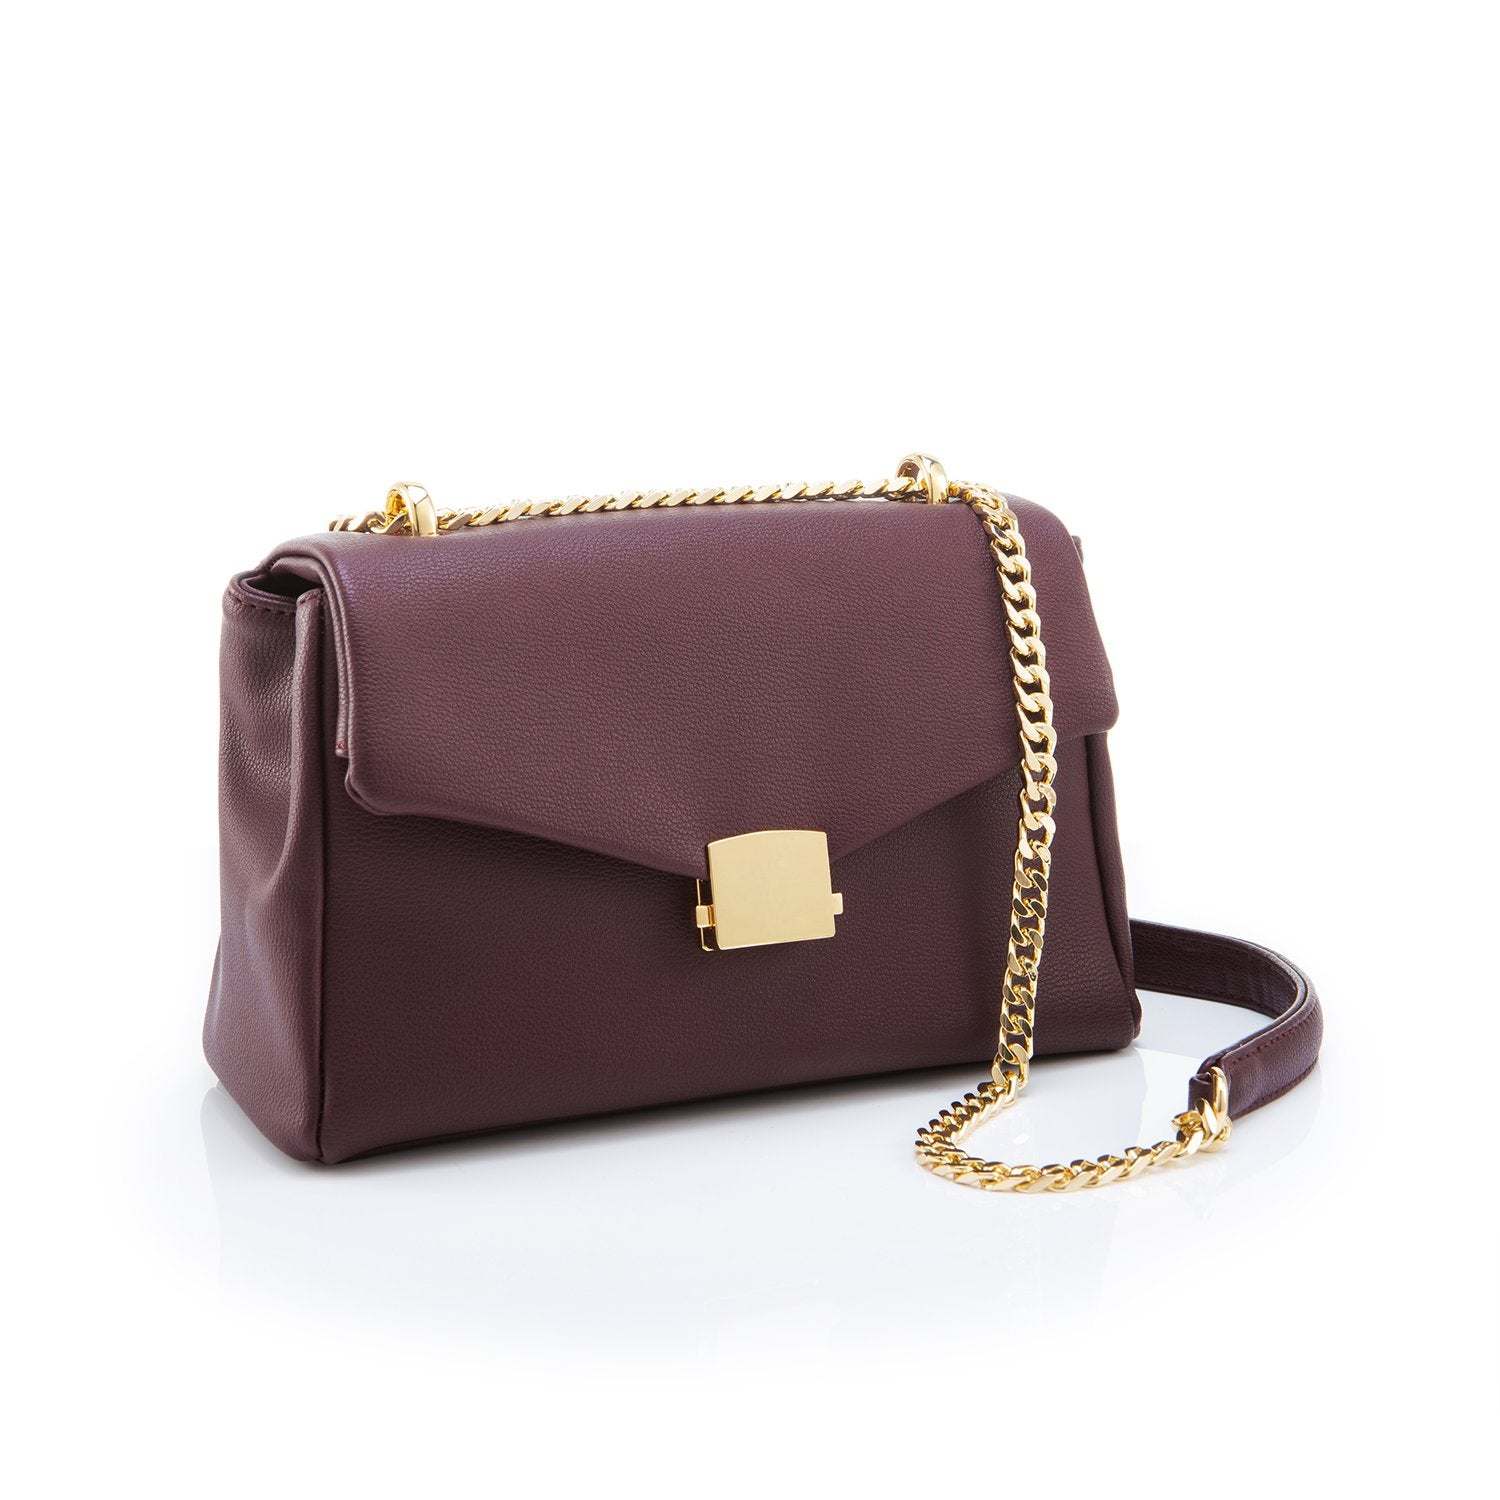 BASTA 2 MINI - PLUM